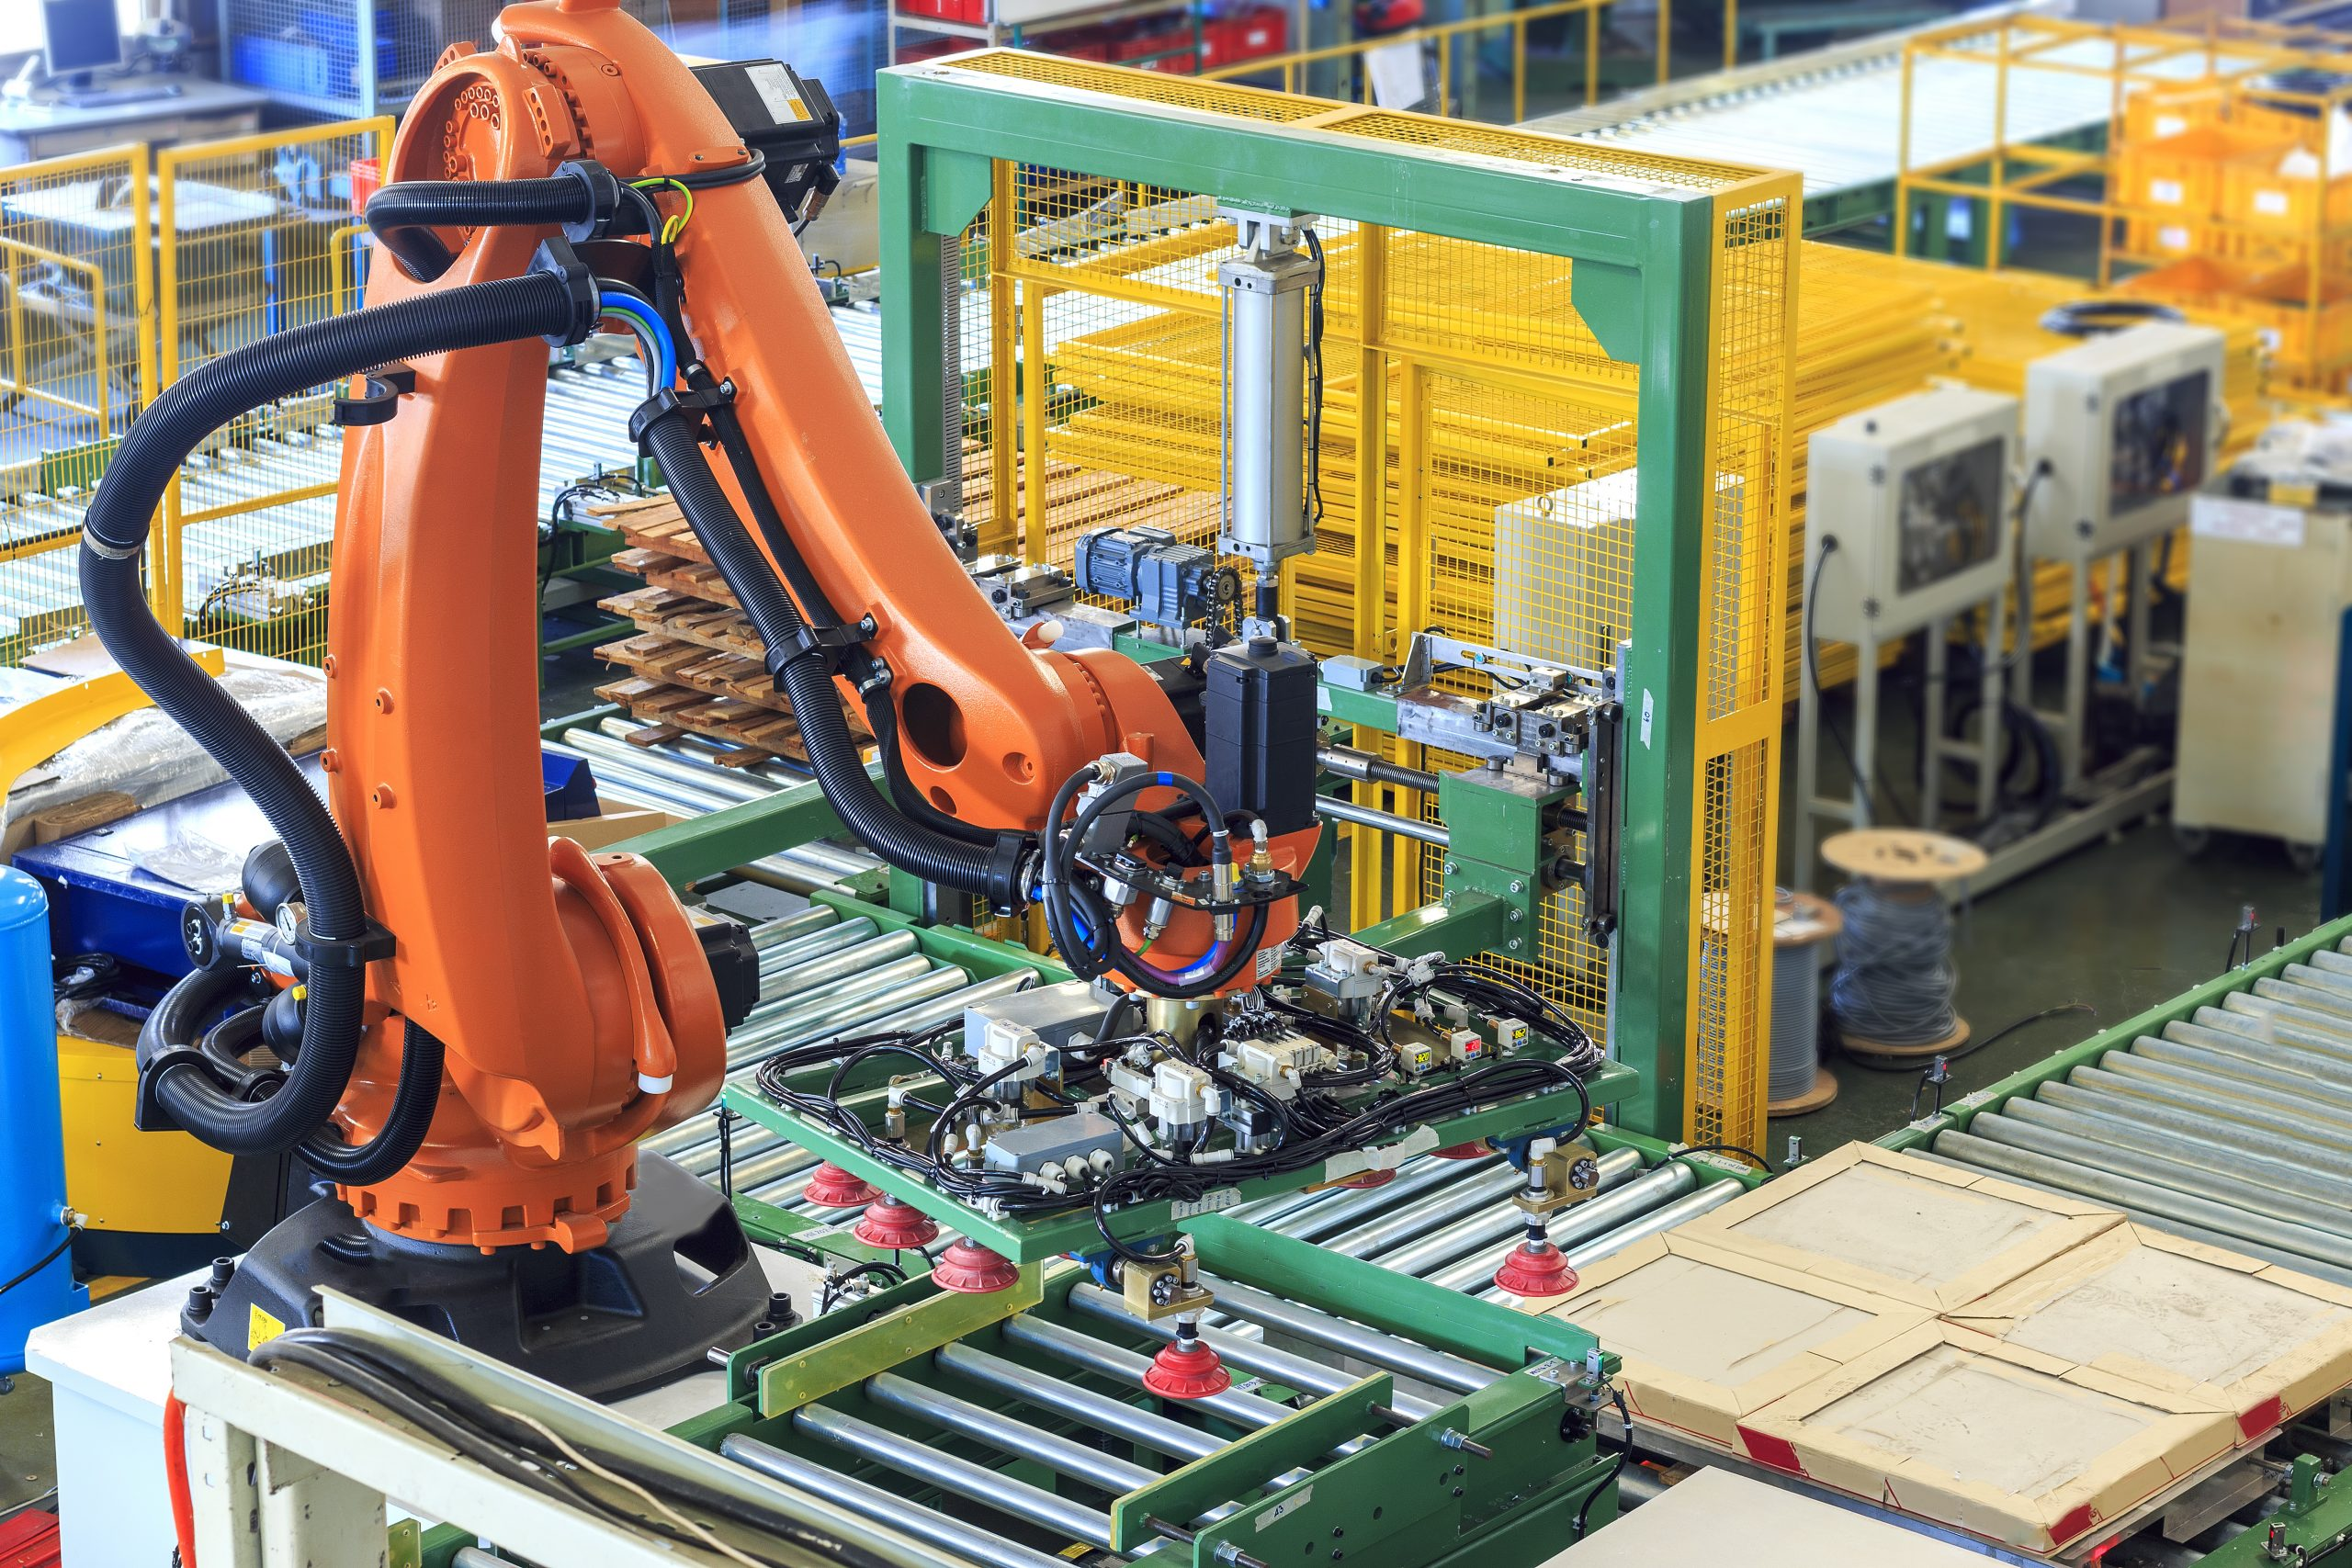 Industrial robot in an automated factory process assembles a circuit board